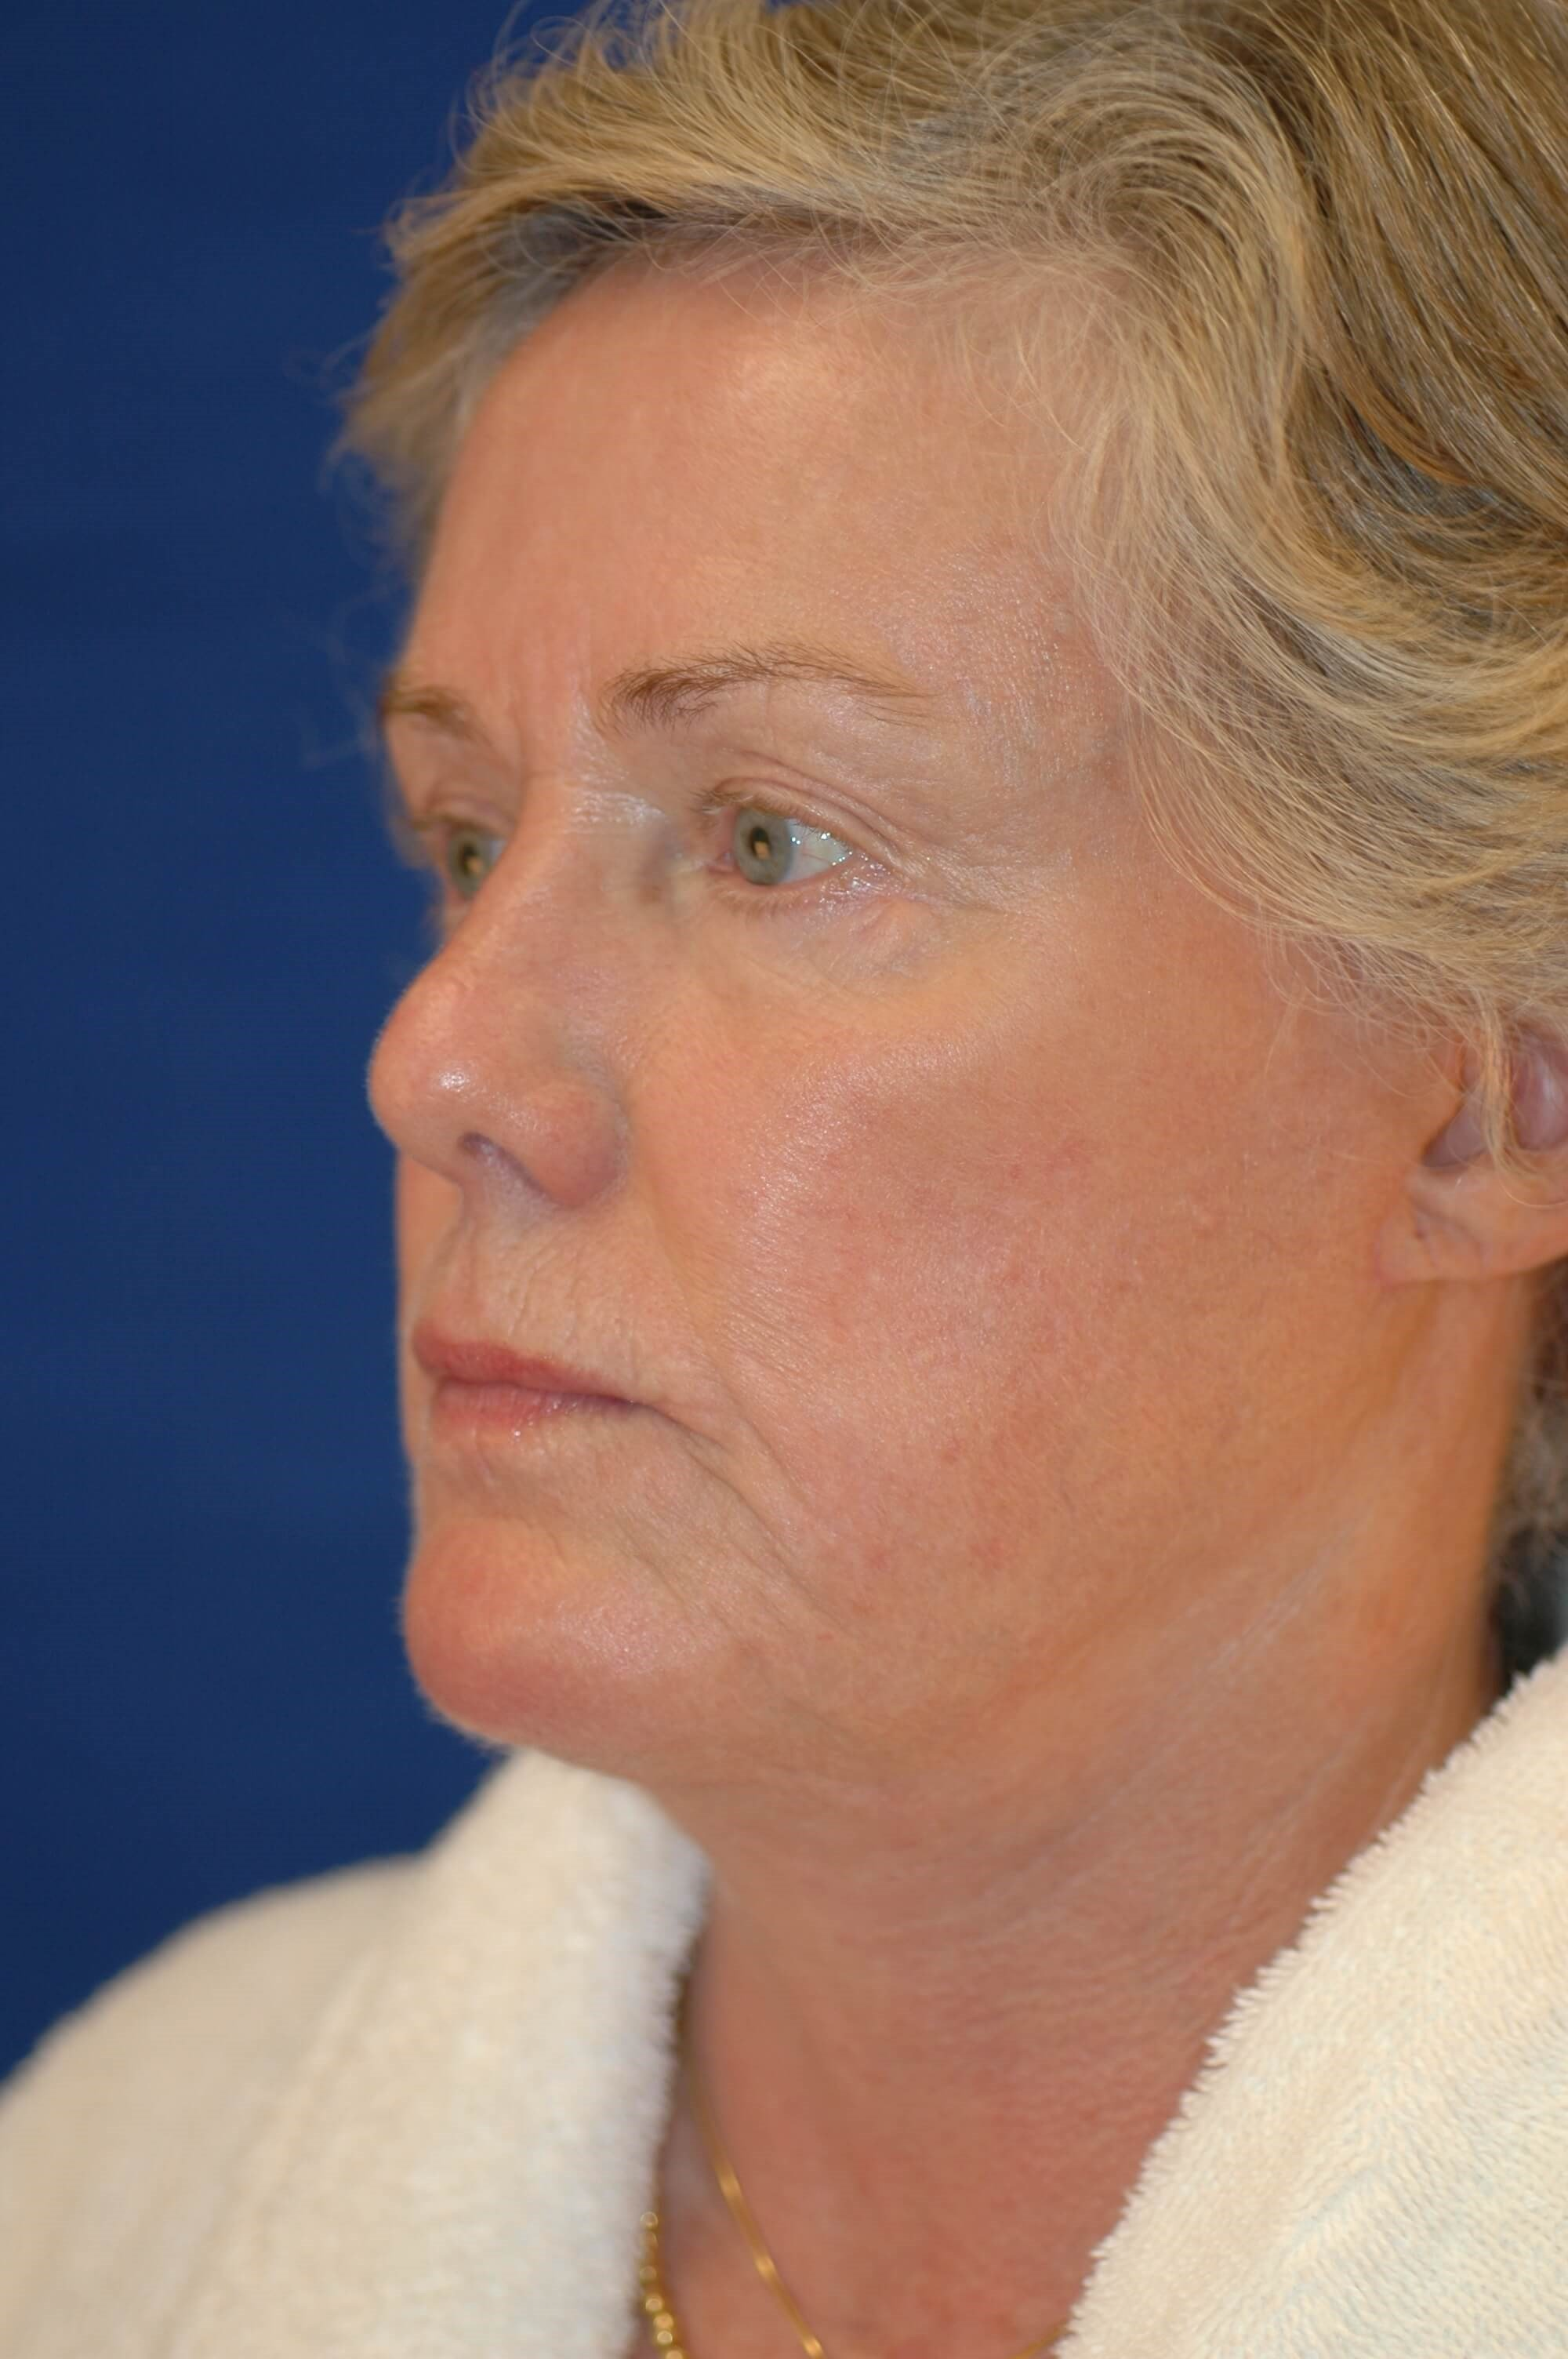 Newport Facial Rejuvenation Oblique View After